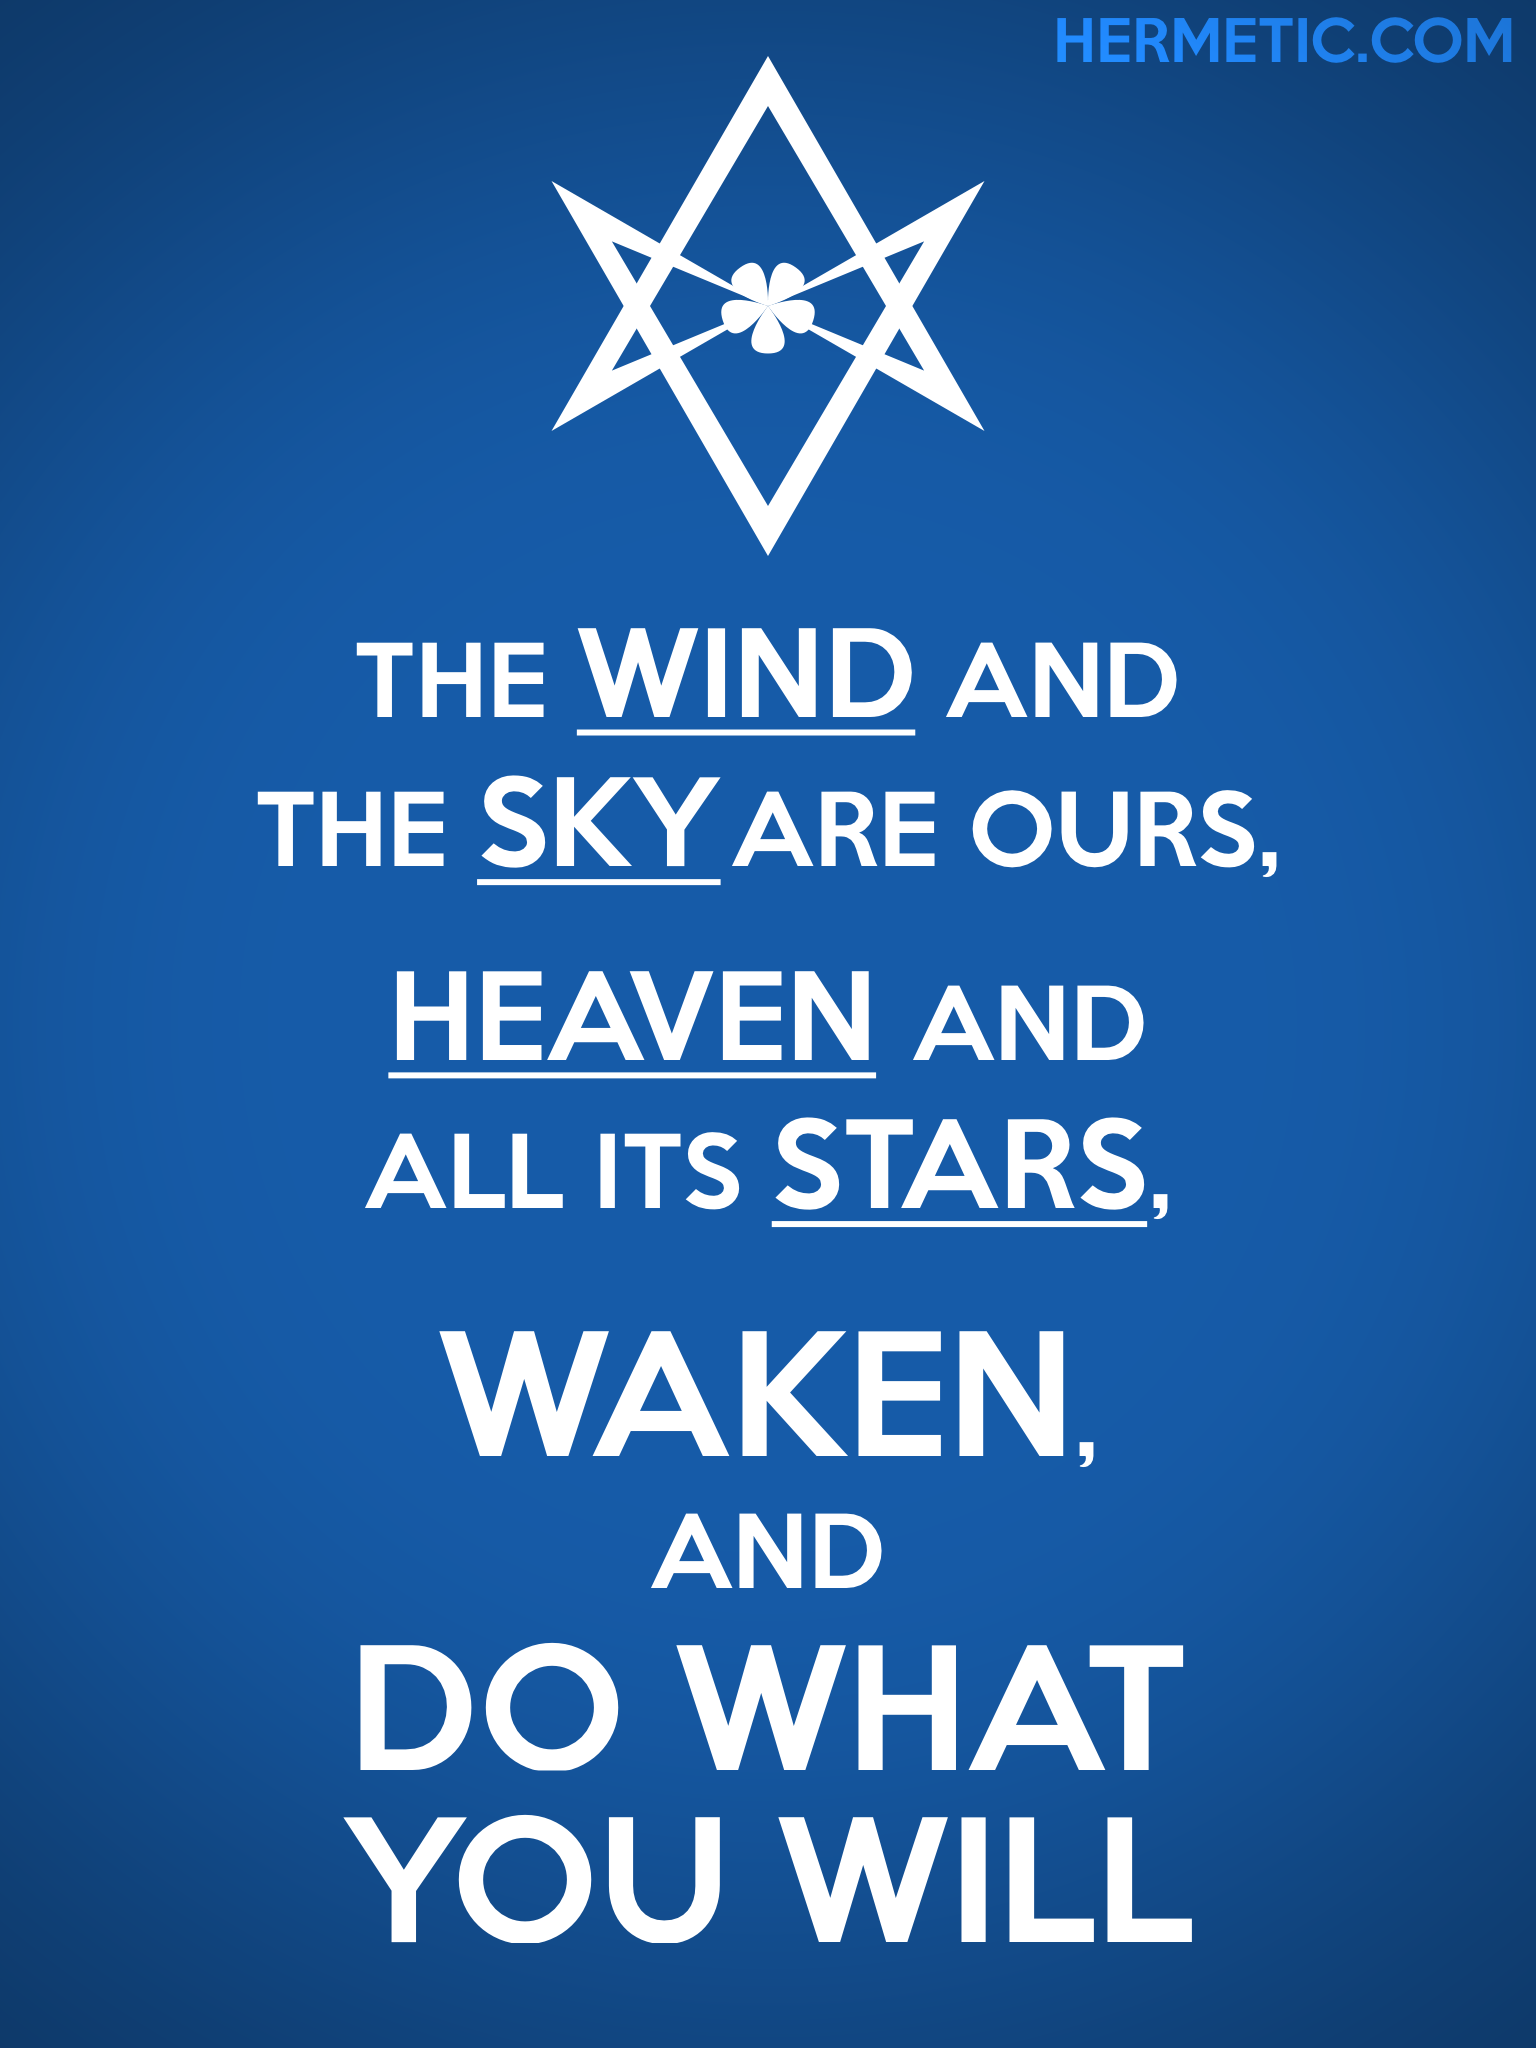 Unicursal WAKEN AND DO WHAT YOU WILL Propaganda Poster from Hermetic Library Ministry of Information